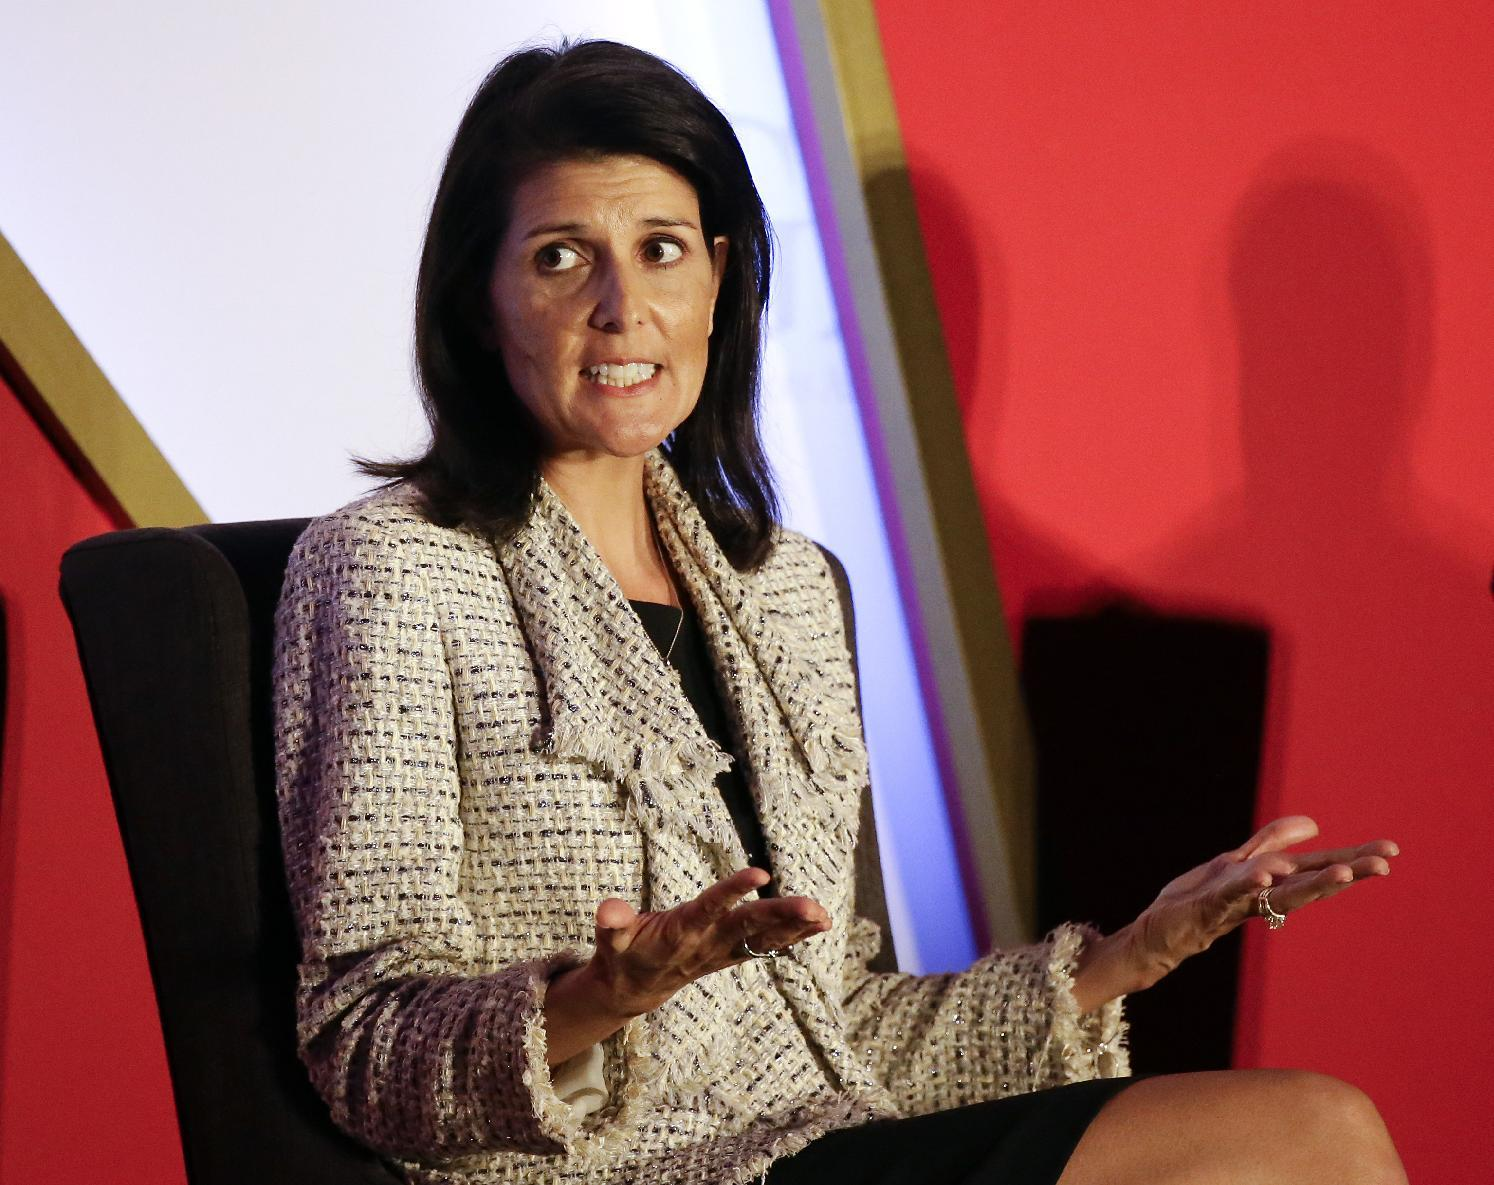 Women for Trump Cabinet: Haley picked for UN, DeVos for Ed